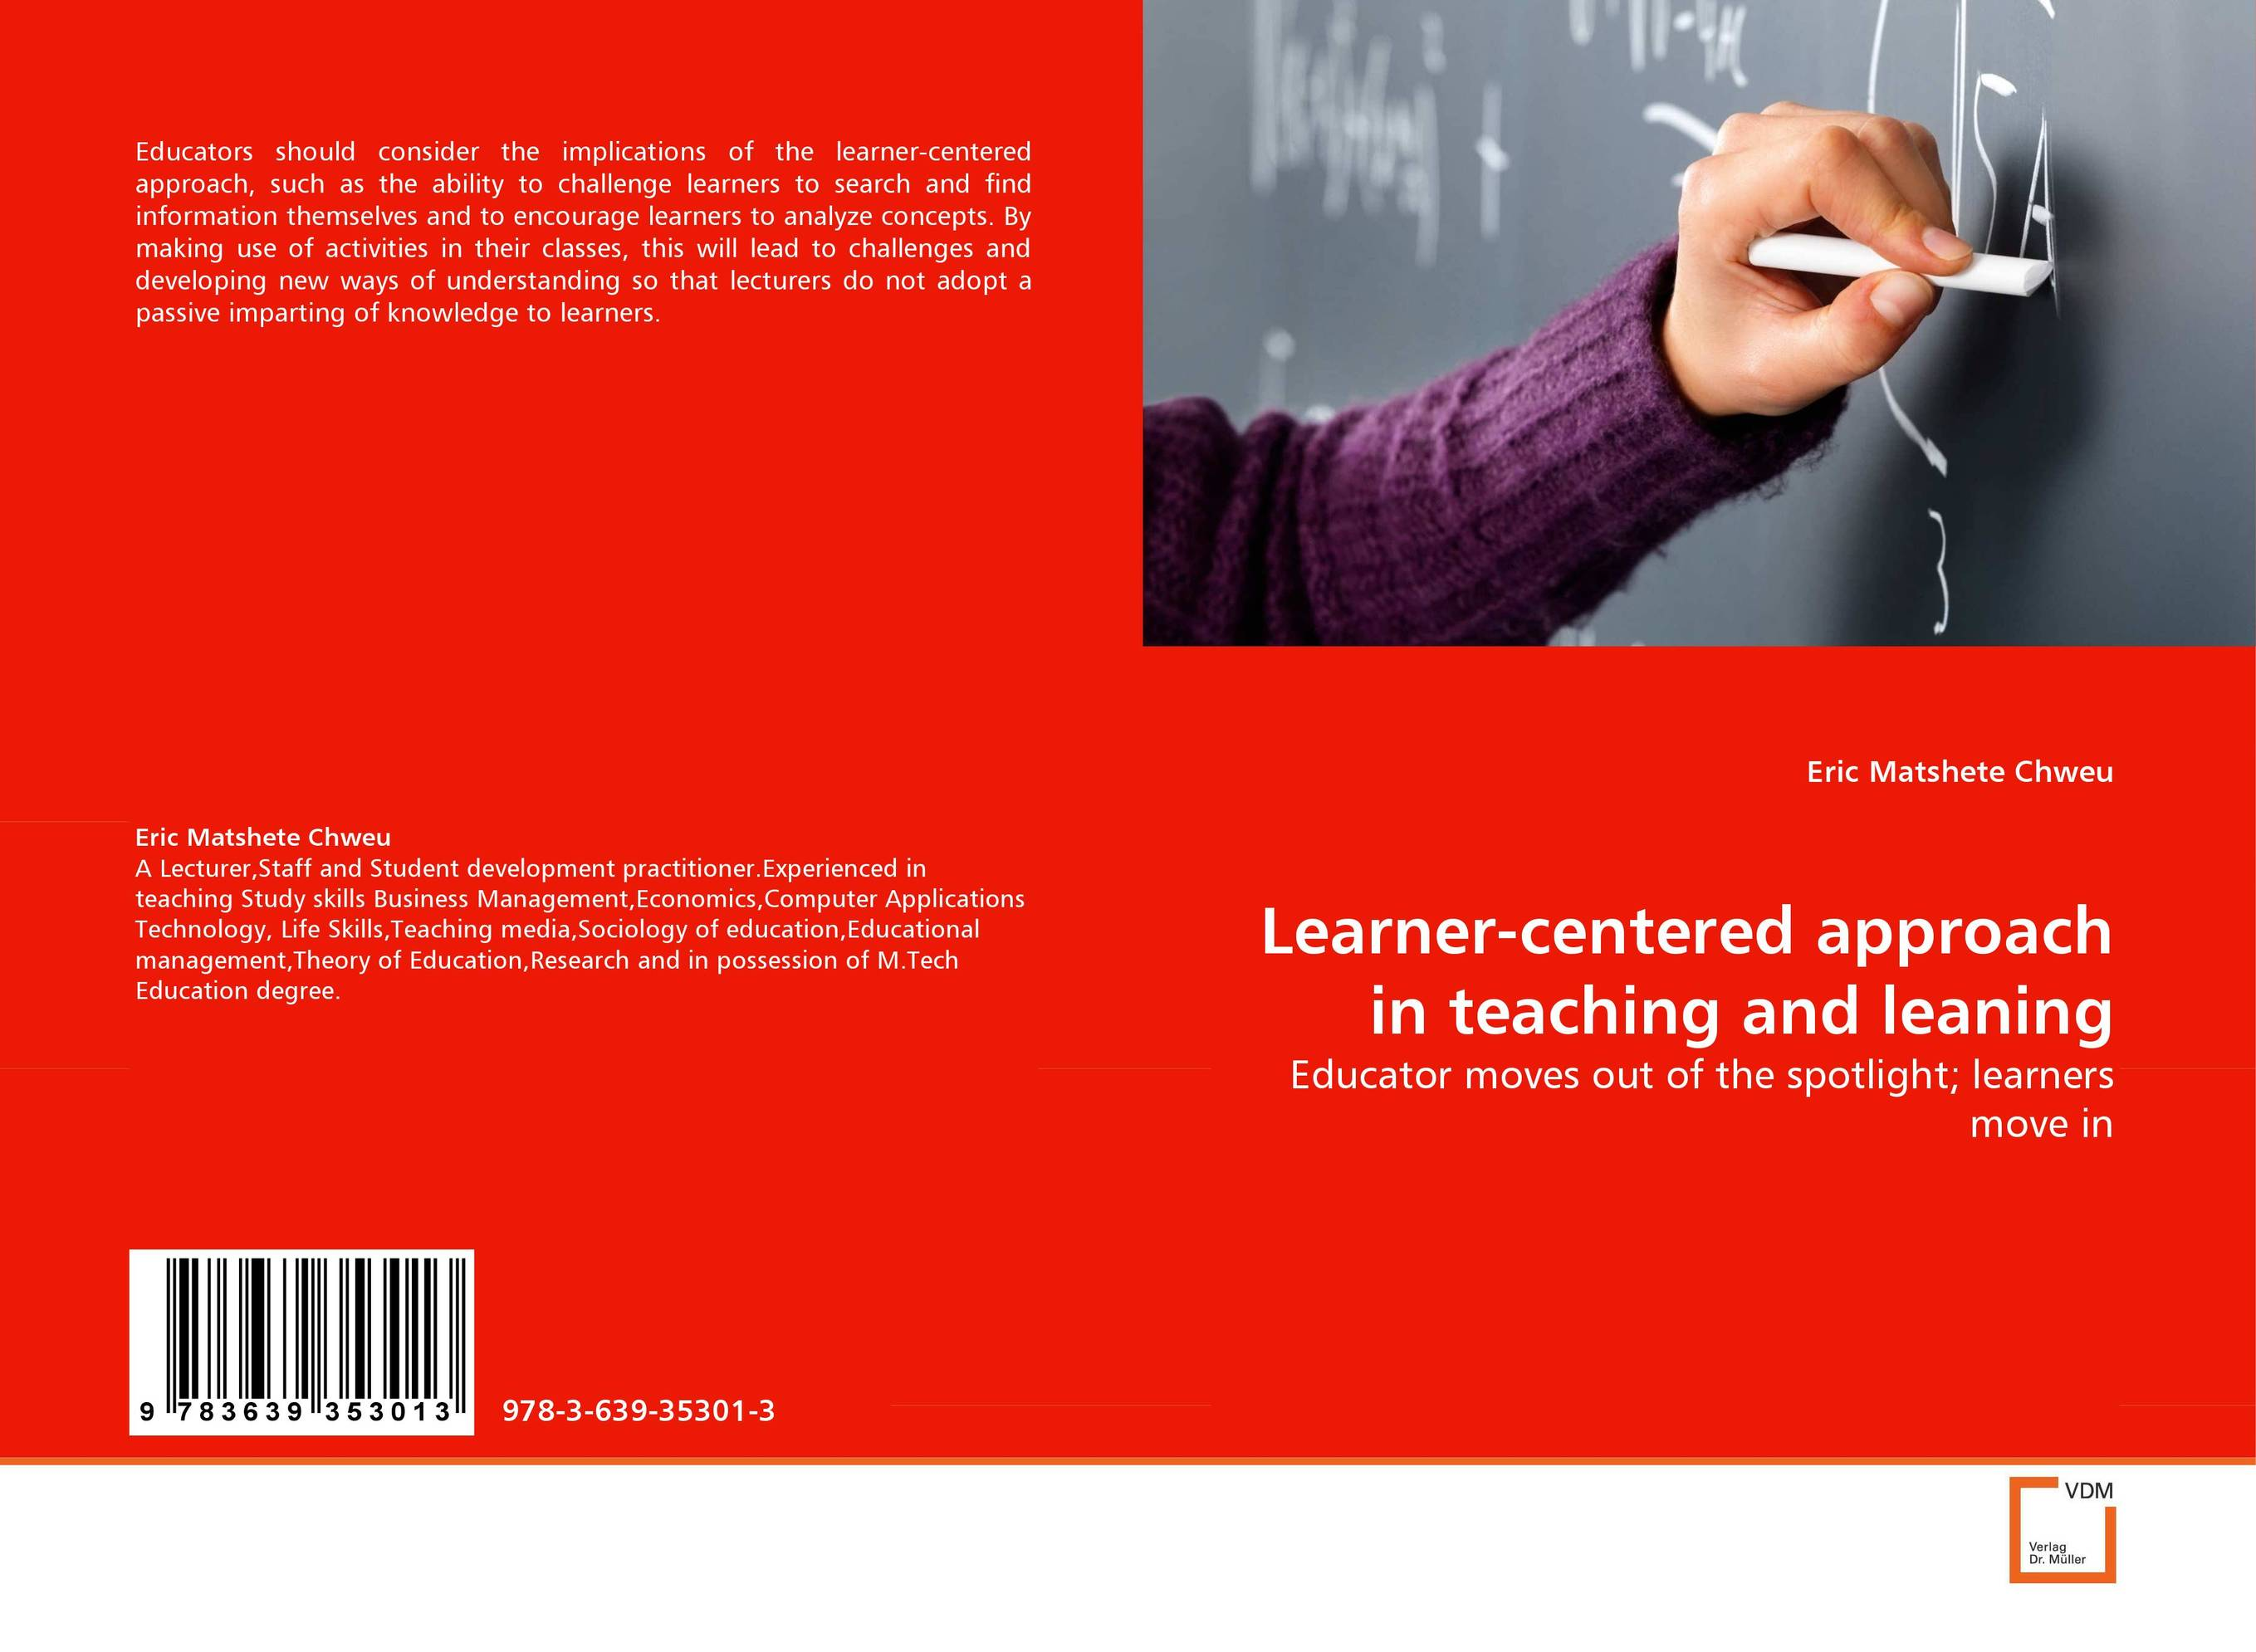 Learner-centered approach in teaching and leaning logos new accords of knowledge as opposed to tekne challenges